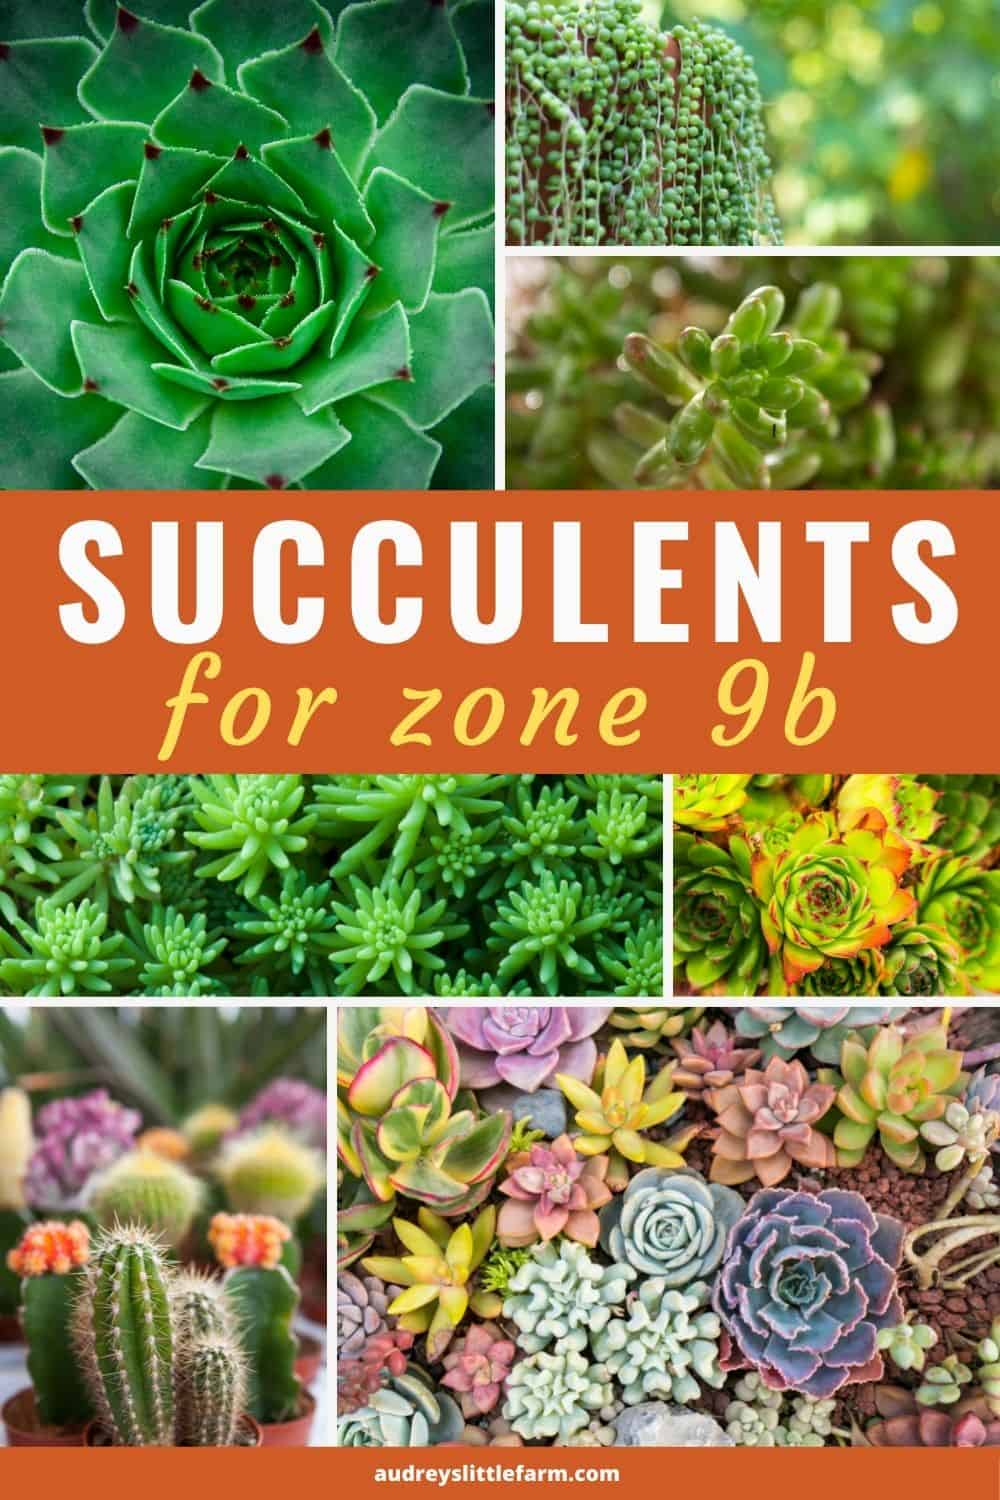 A Variety of Succulents Growing in Zone 9b